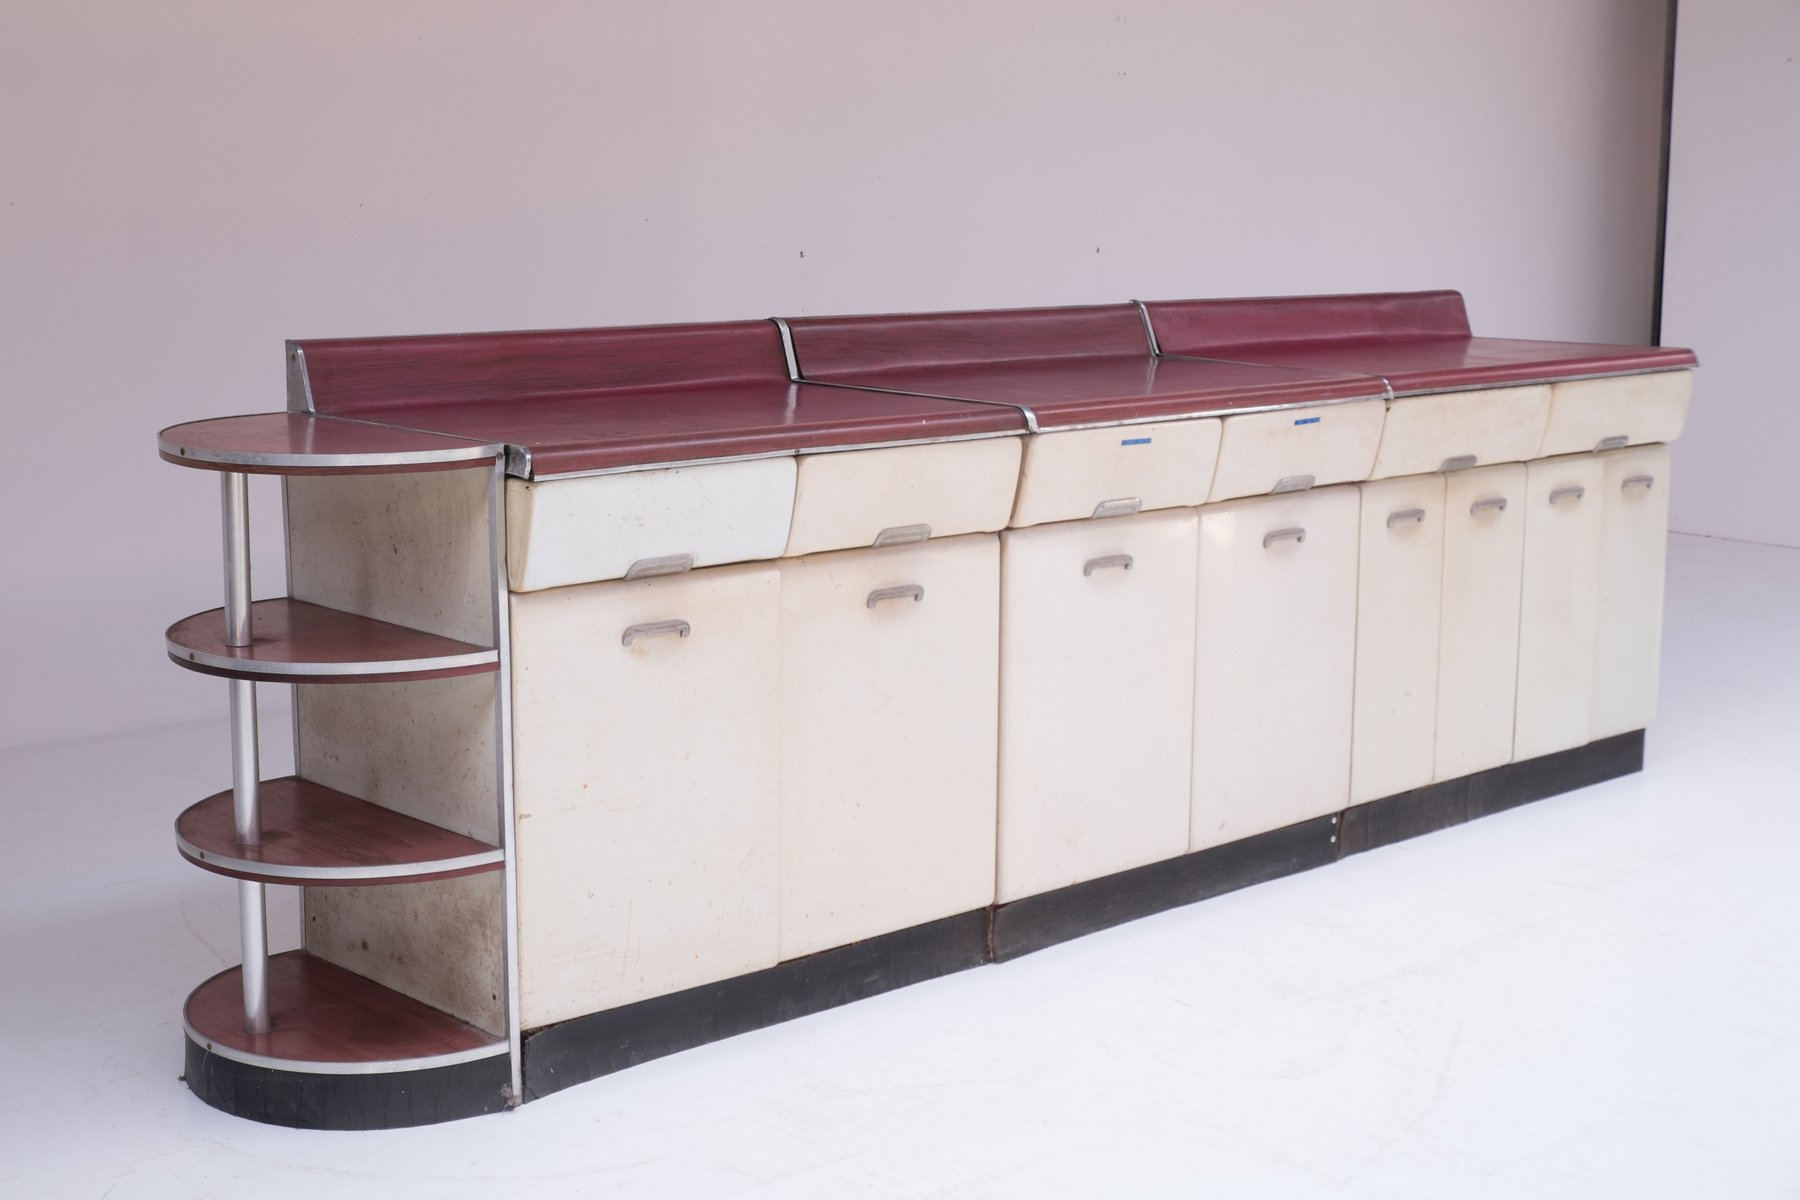 Kitchen Cabinet Set By Raymond Loewy 1950s For Sale At Pamono